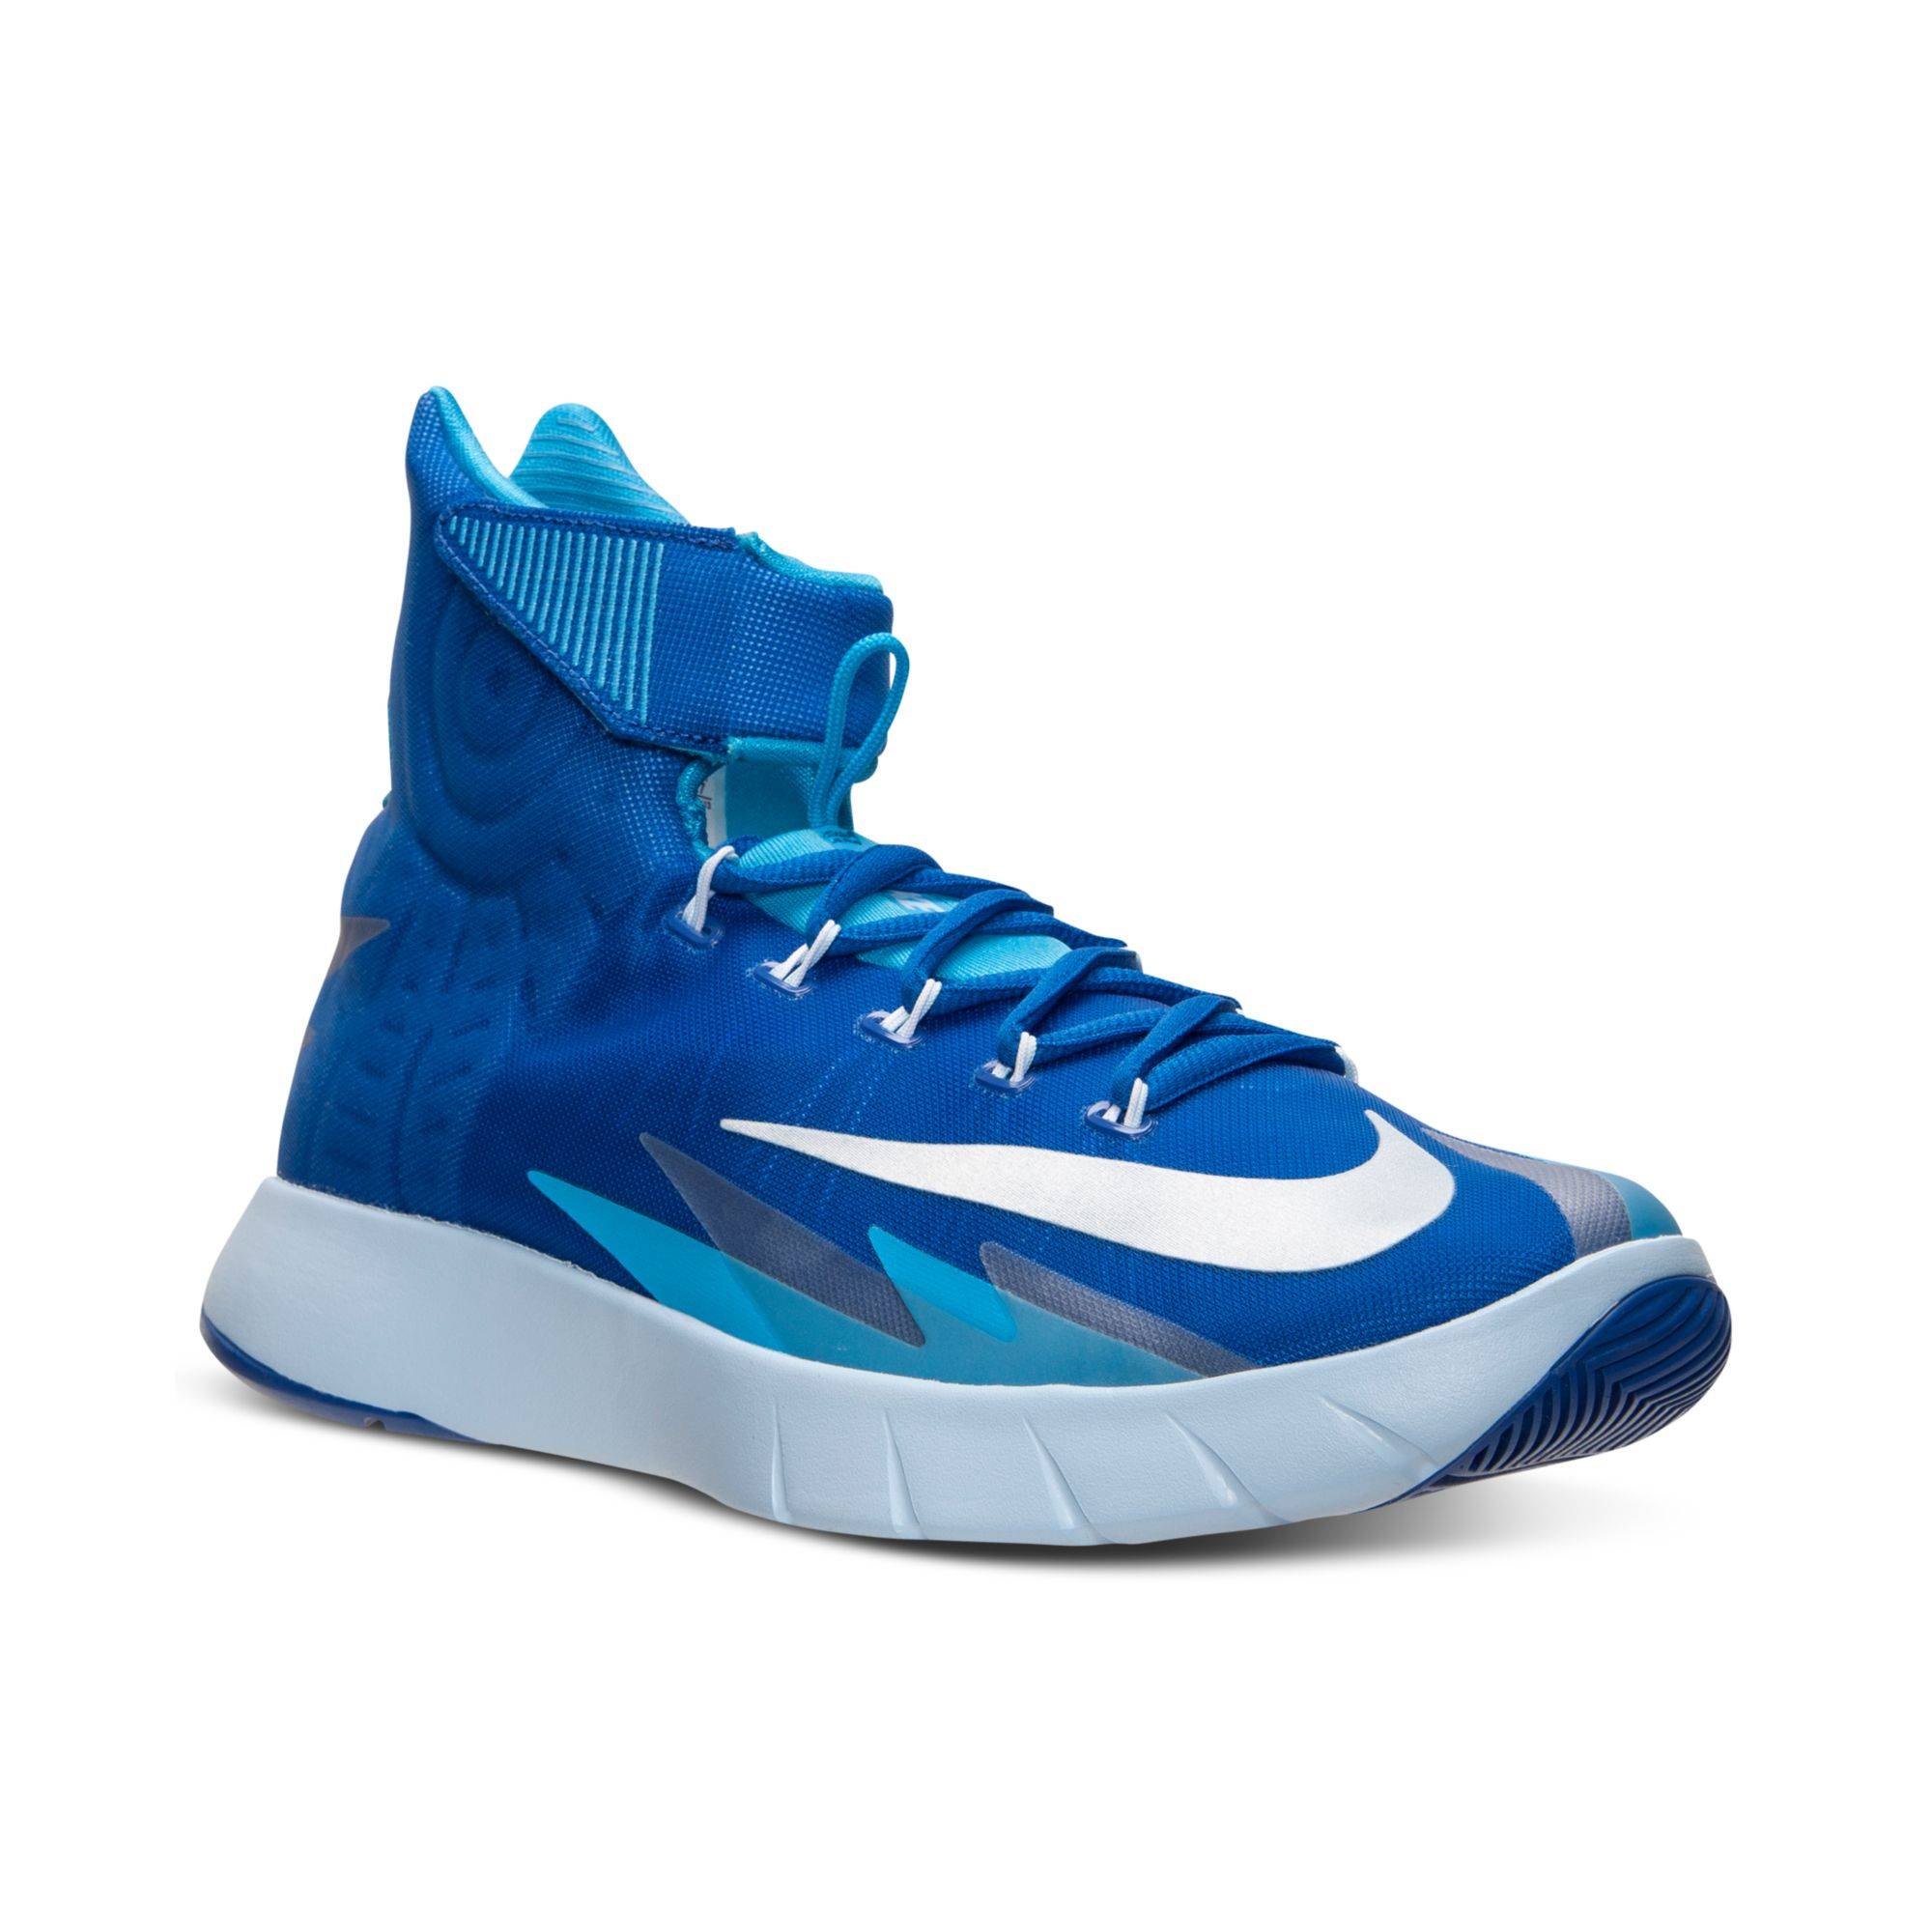 Nike Flywire Shoes Mens